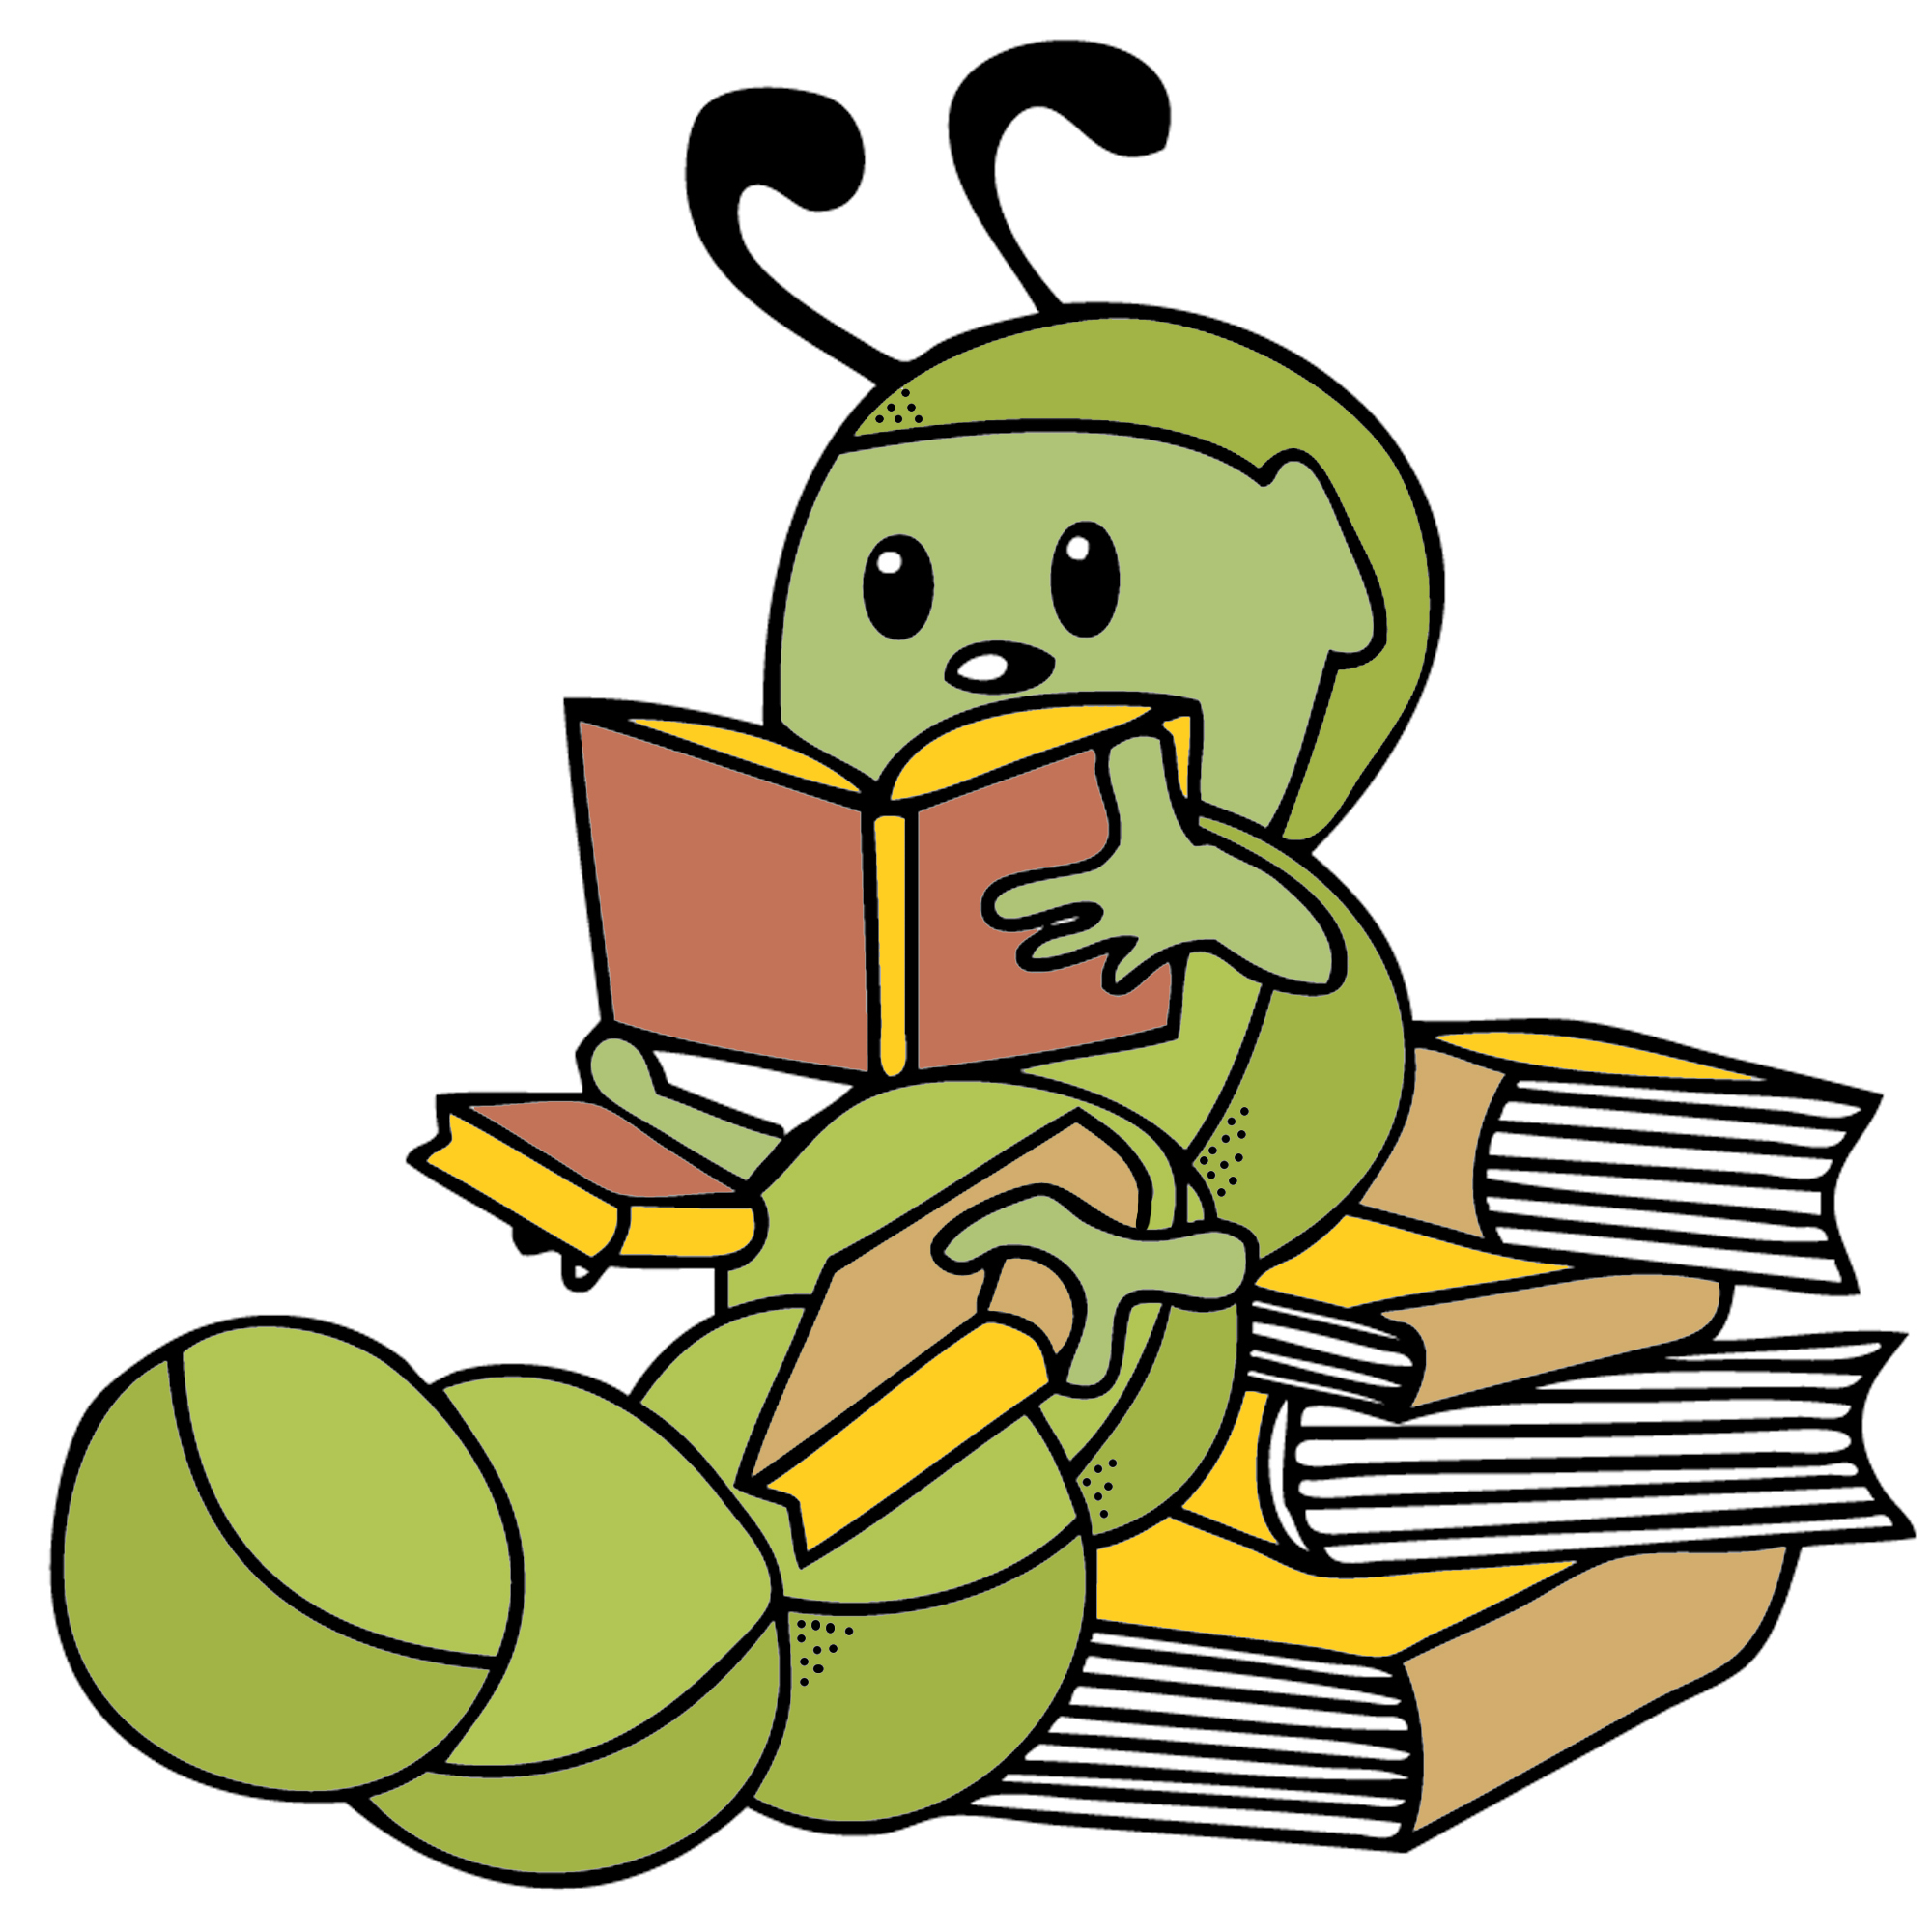 Bookworm clipart 20 free Cliparts | Download images on ...